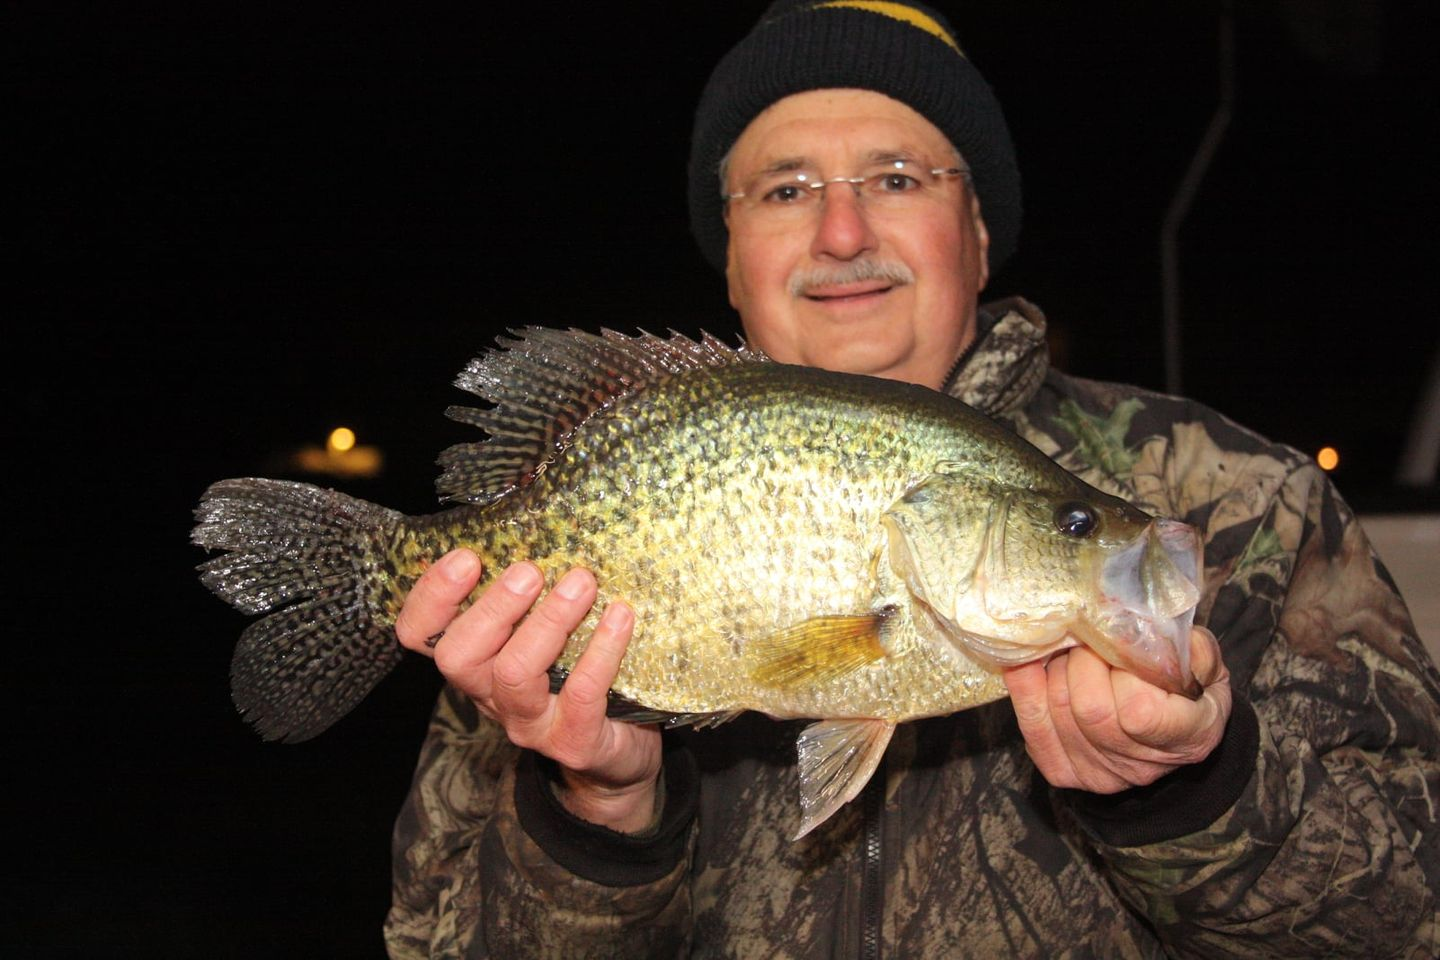 An angler holds up a large crappie.